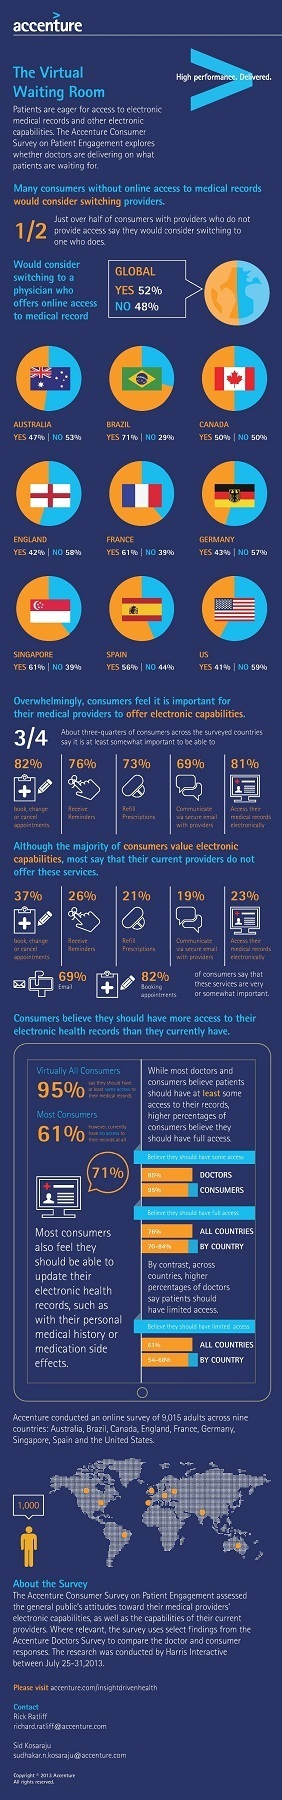 Infographic: Patients Want Access To Their Electronic Medical Records | The Atrial Fibrillation Independent Post | Scoop.it